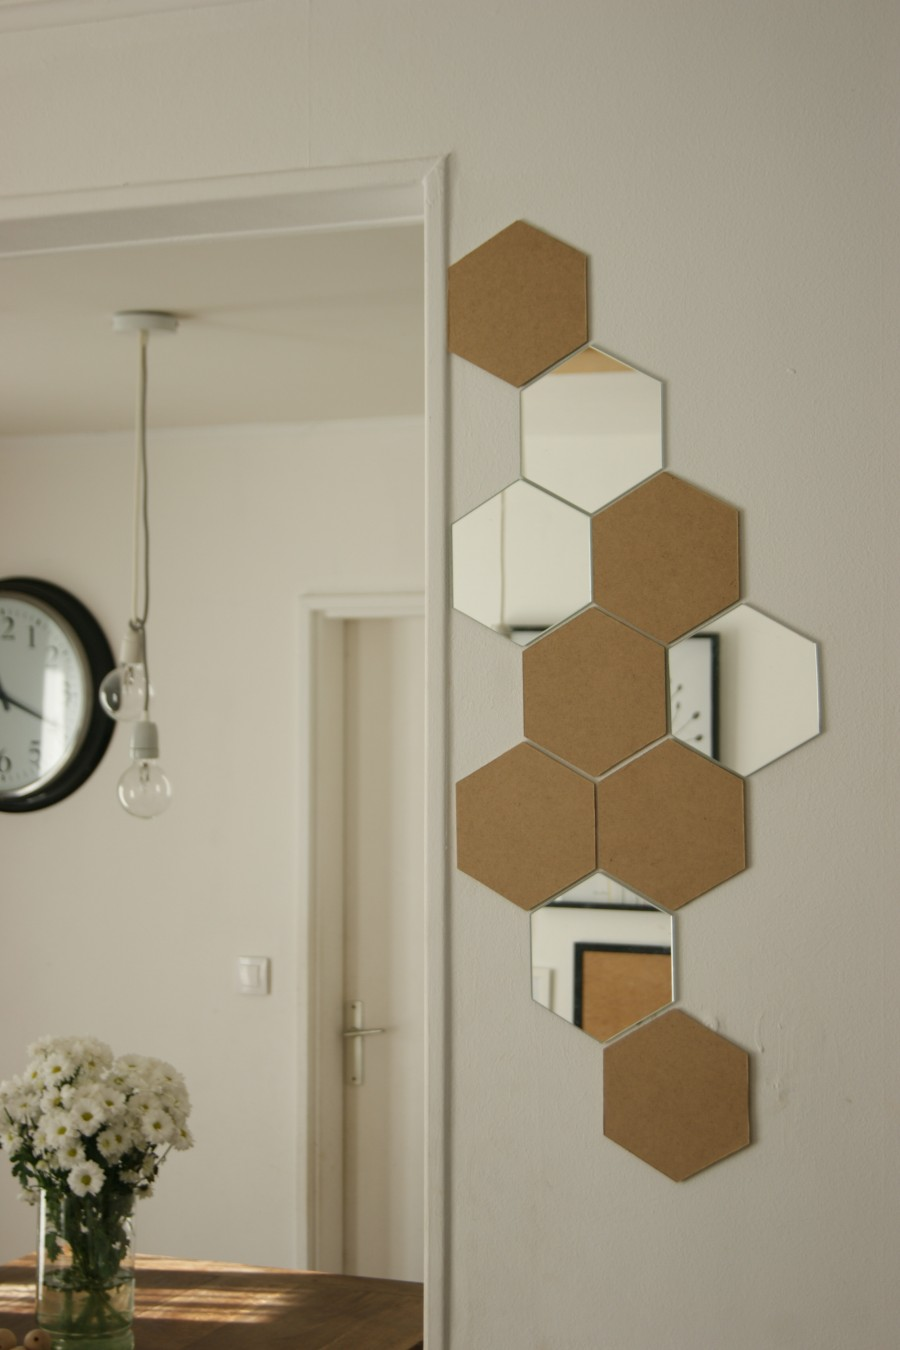 Diy hexagone dans ma deco lyg for Decoration murale hexagonale